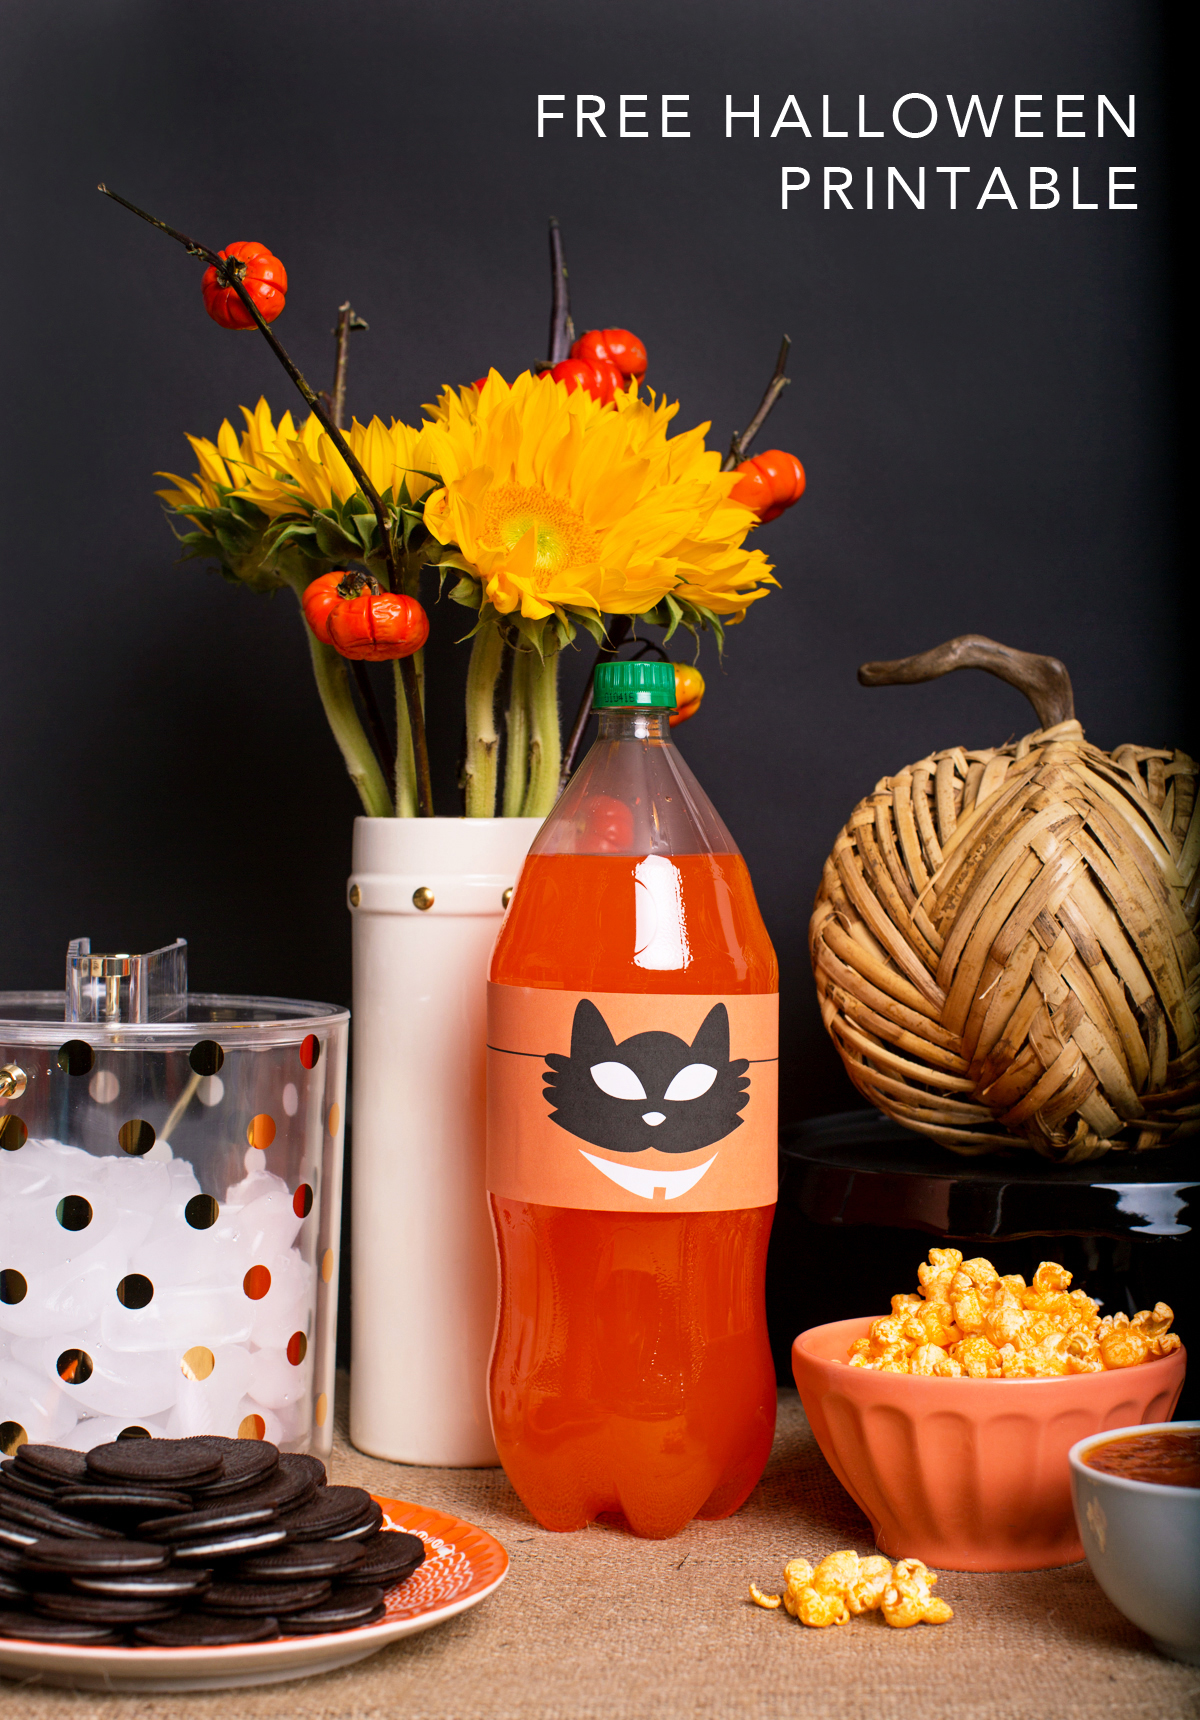 a-text-fanta-orange-soda-quick-halloween-pumpkin-party-printable-free-9958